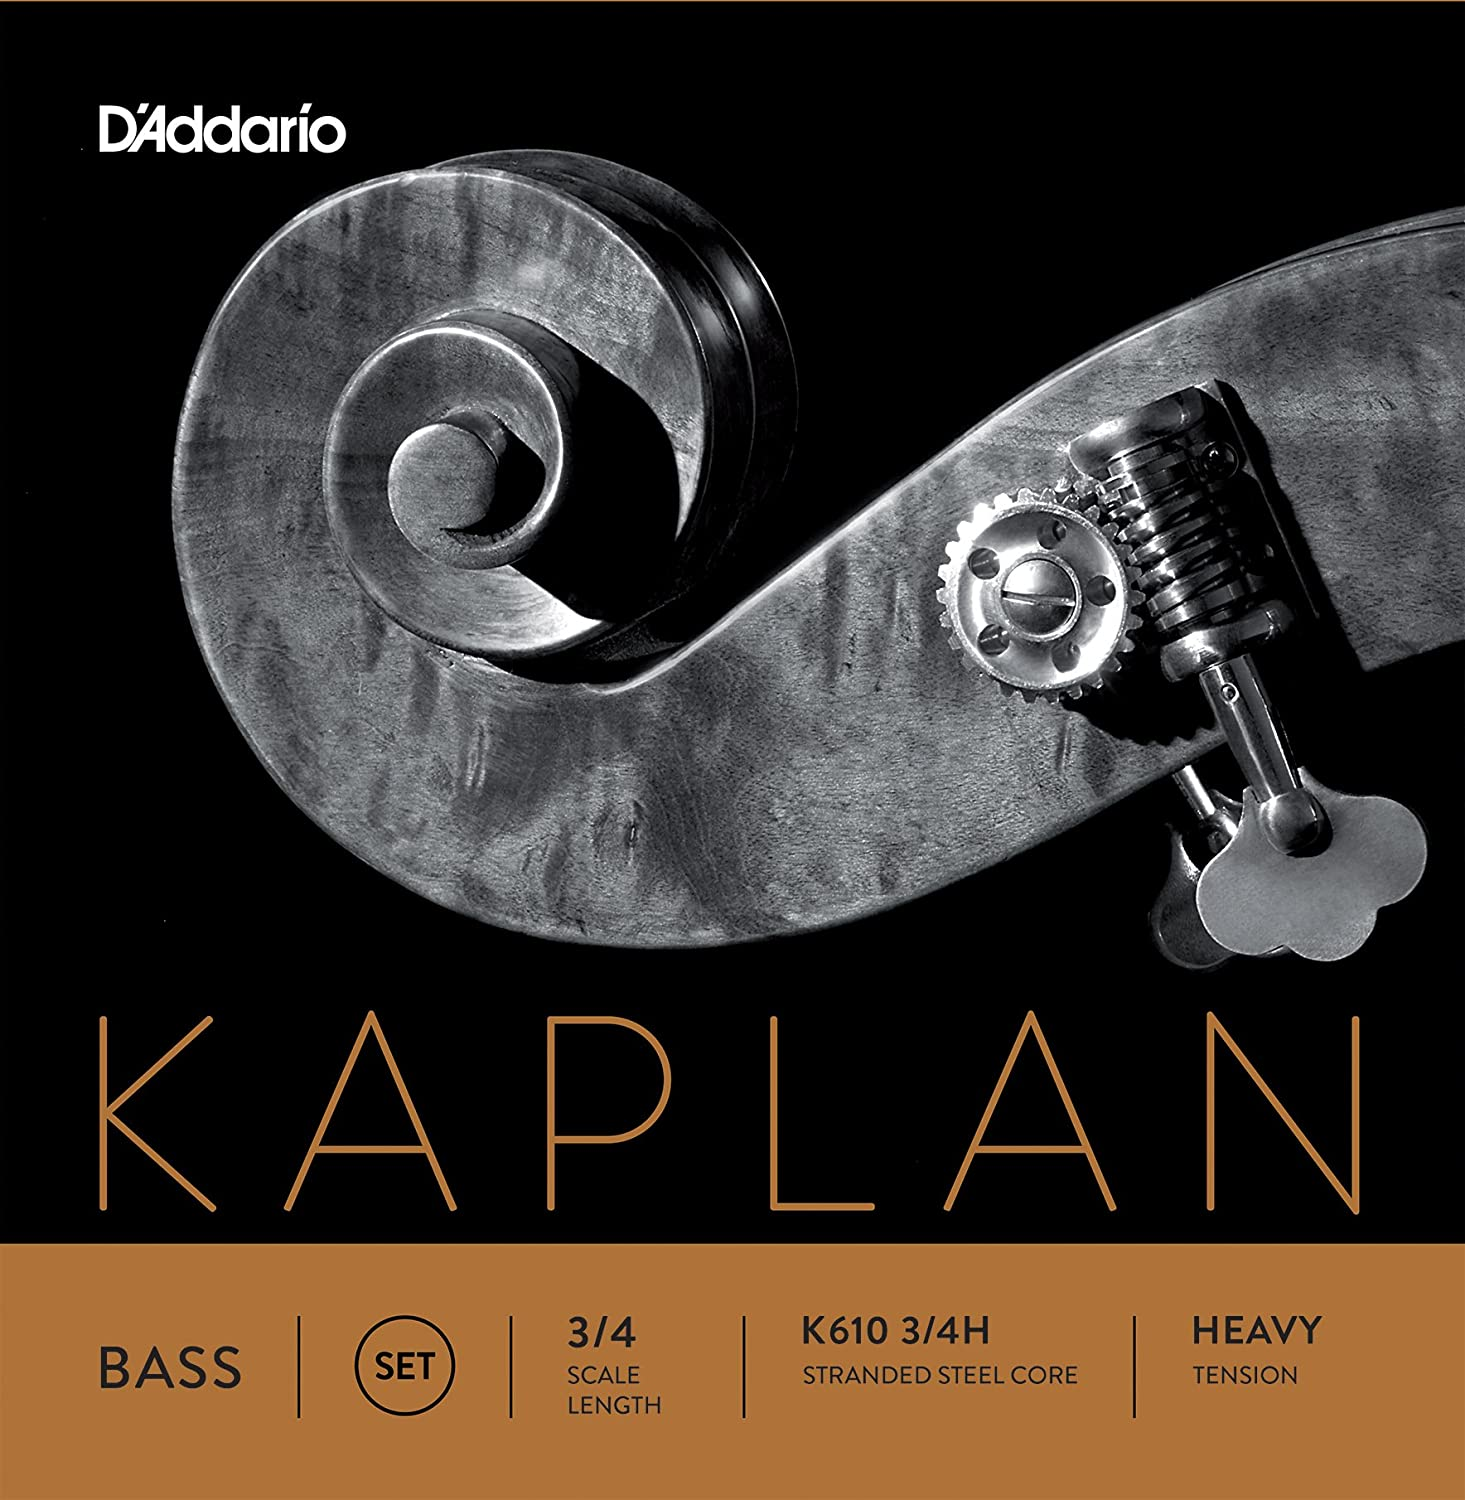 D'Addario Kaplan Bass String Set, 3/4 Scale, Medium Tension D' Addario K610 3/4M